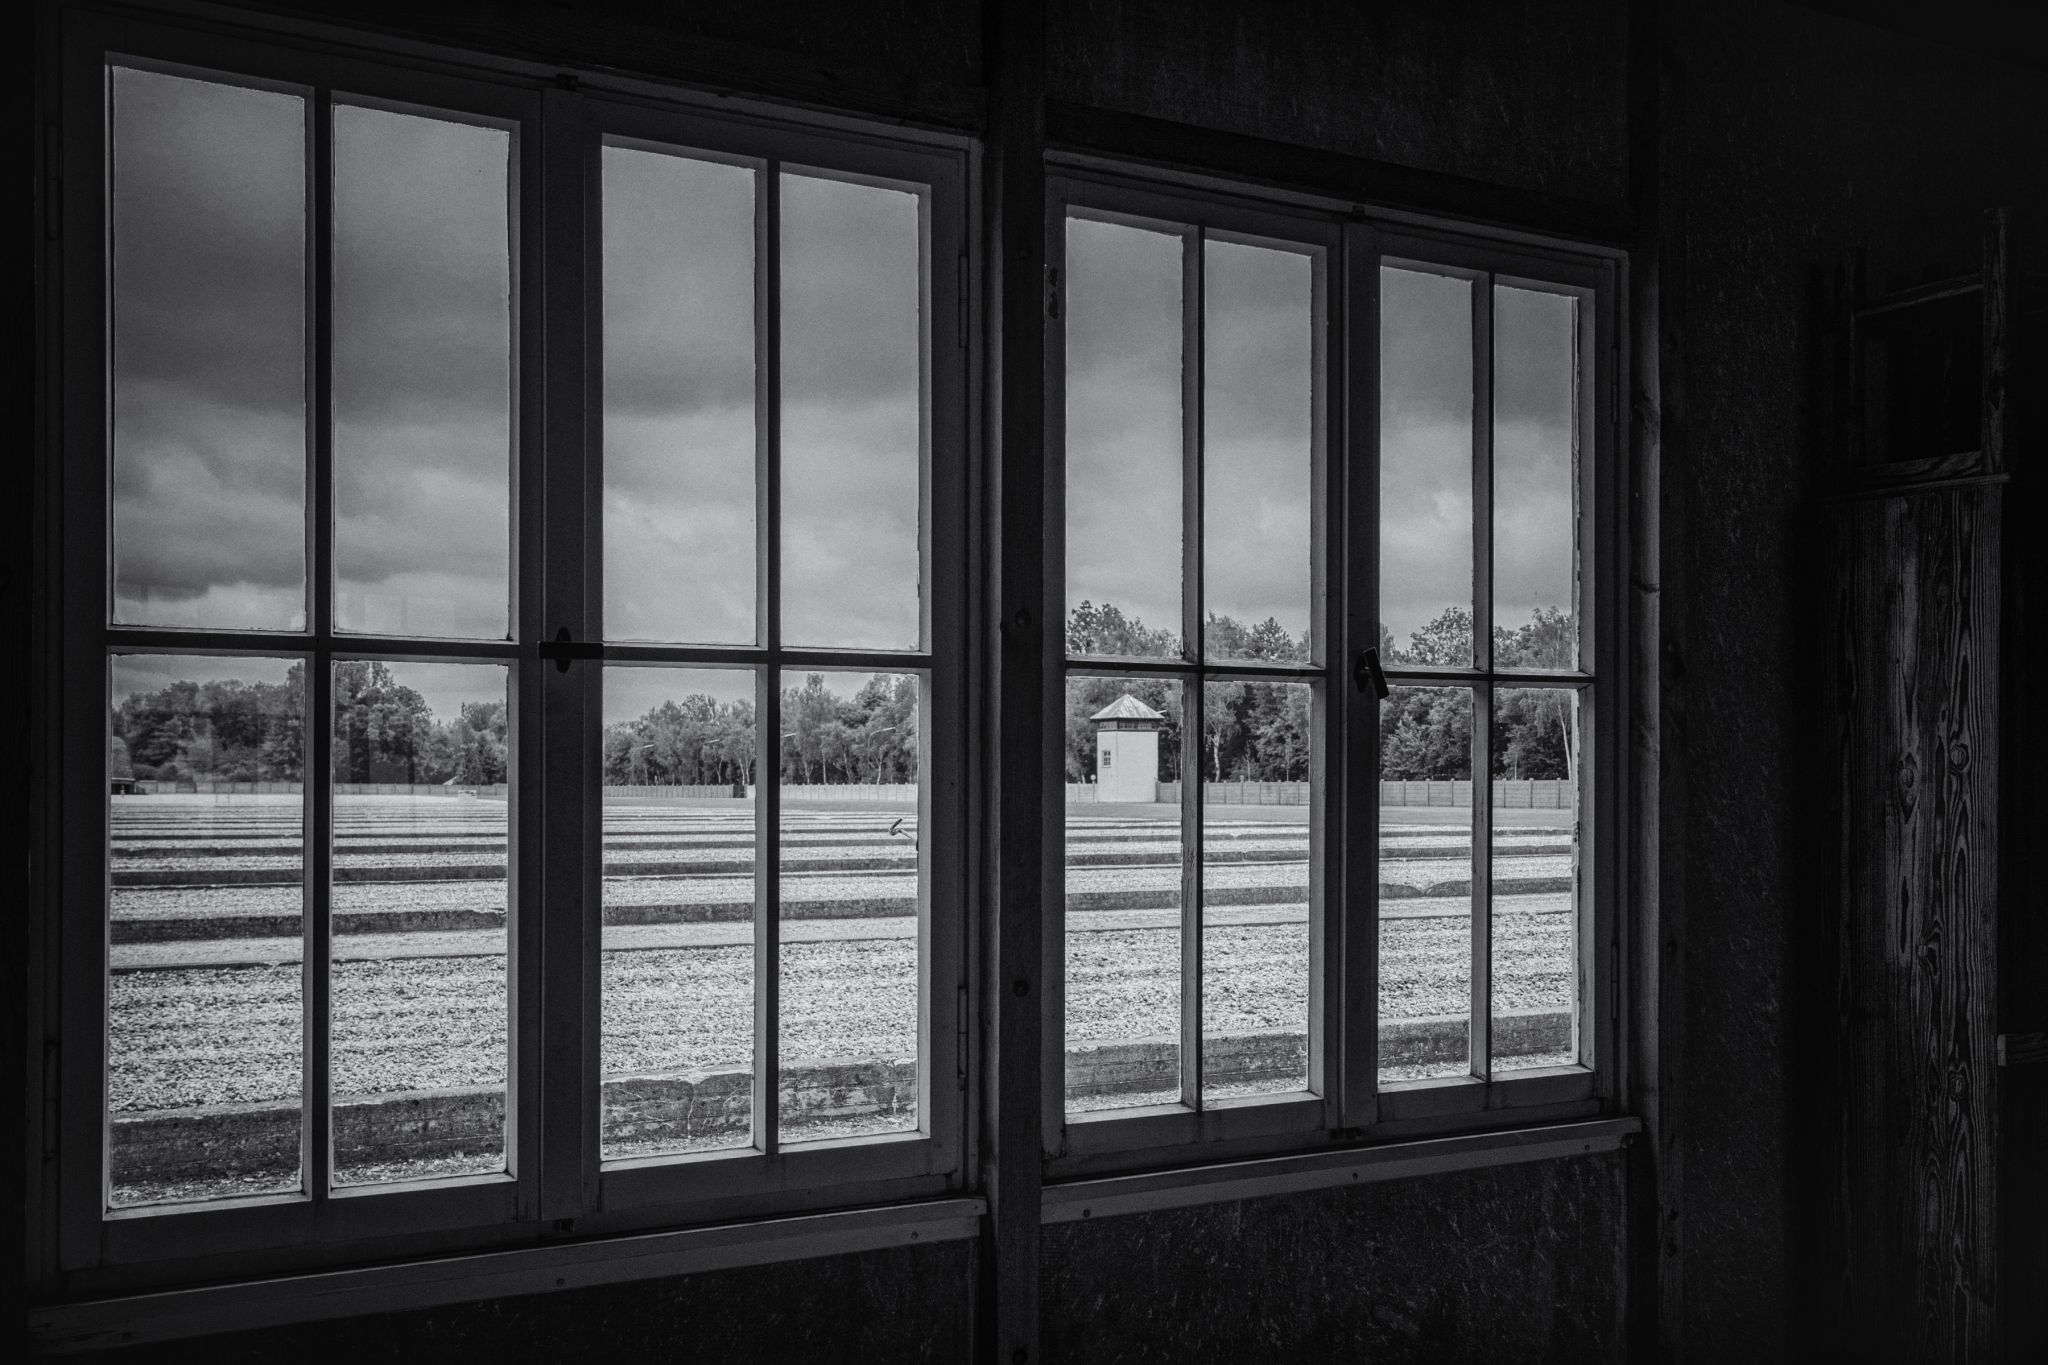 Concentration Camp, Germany